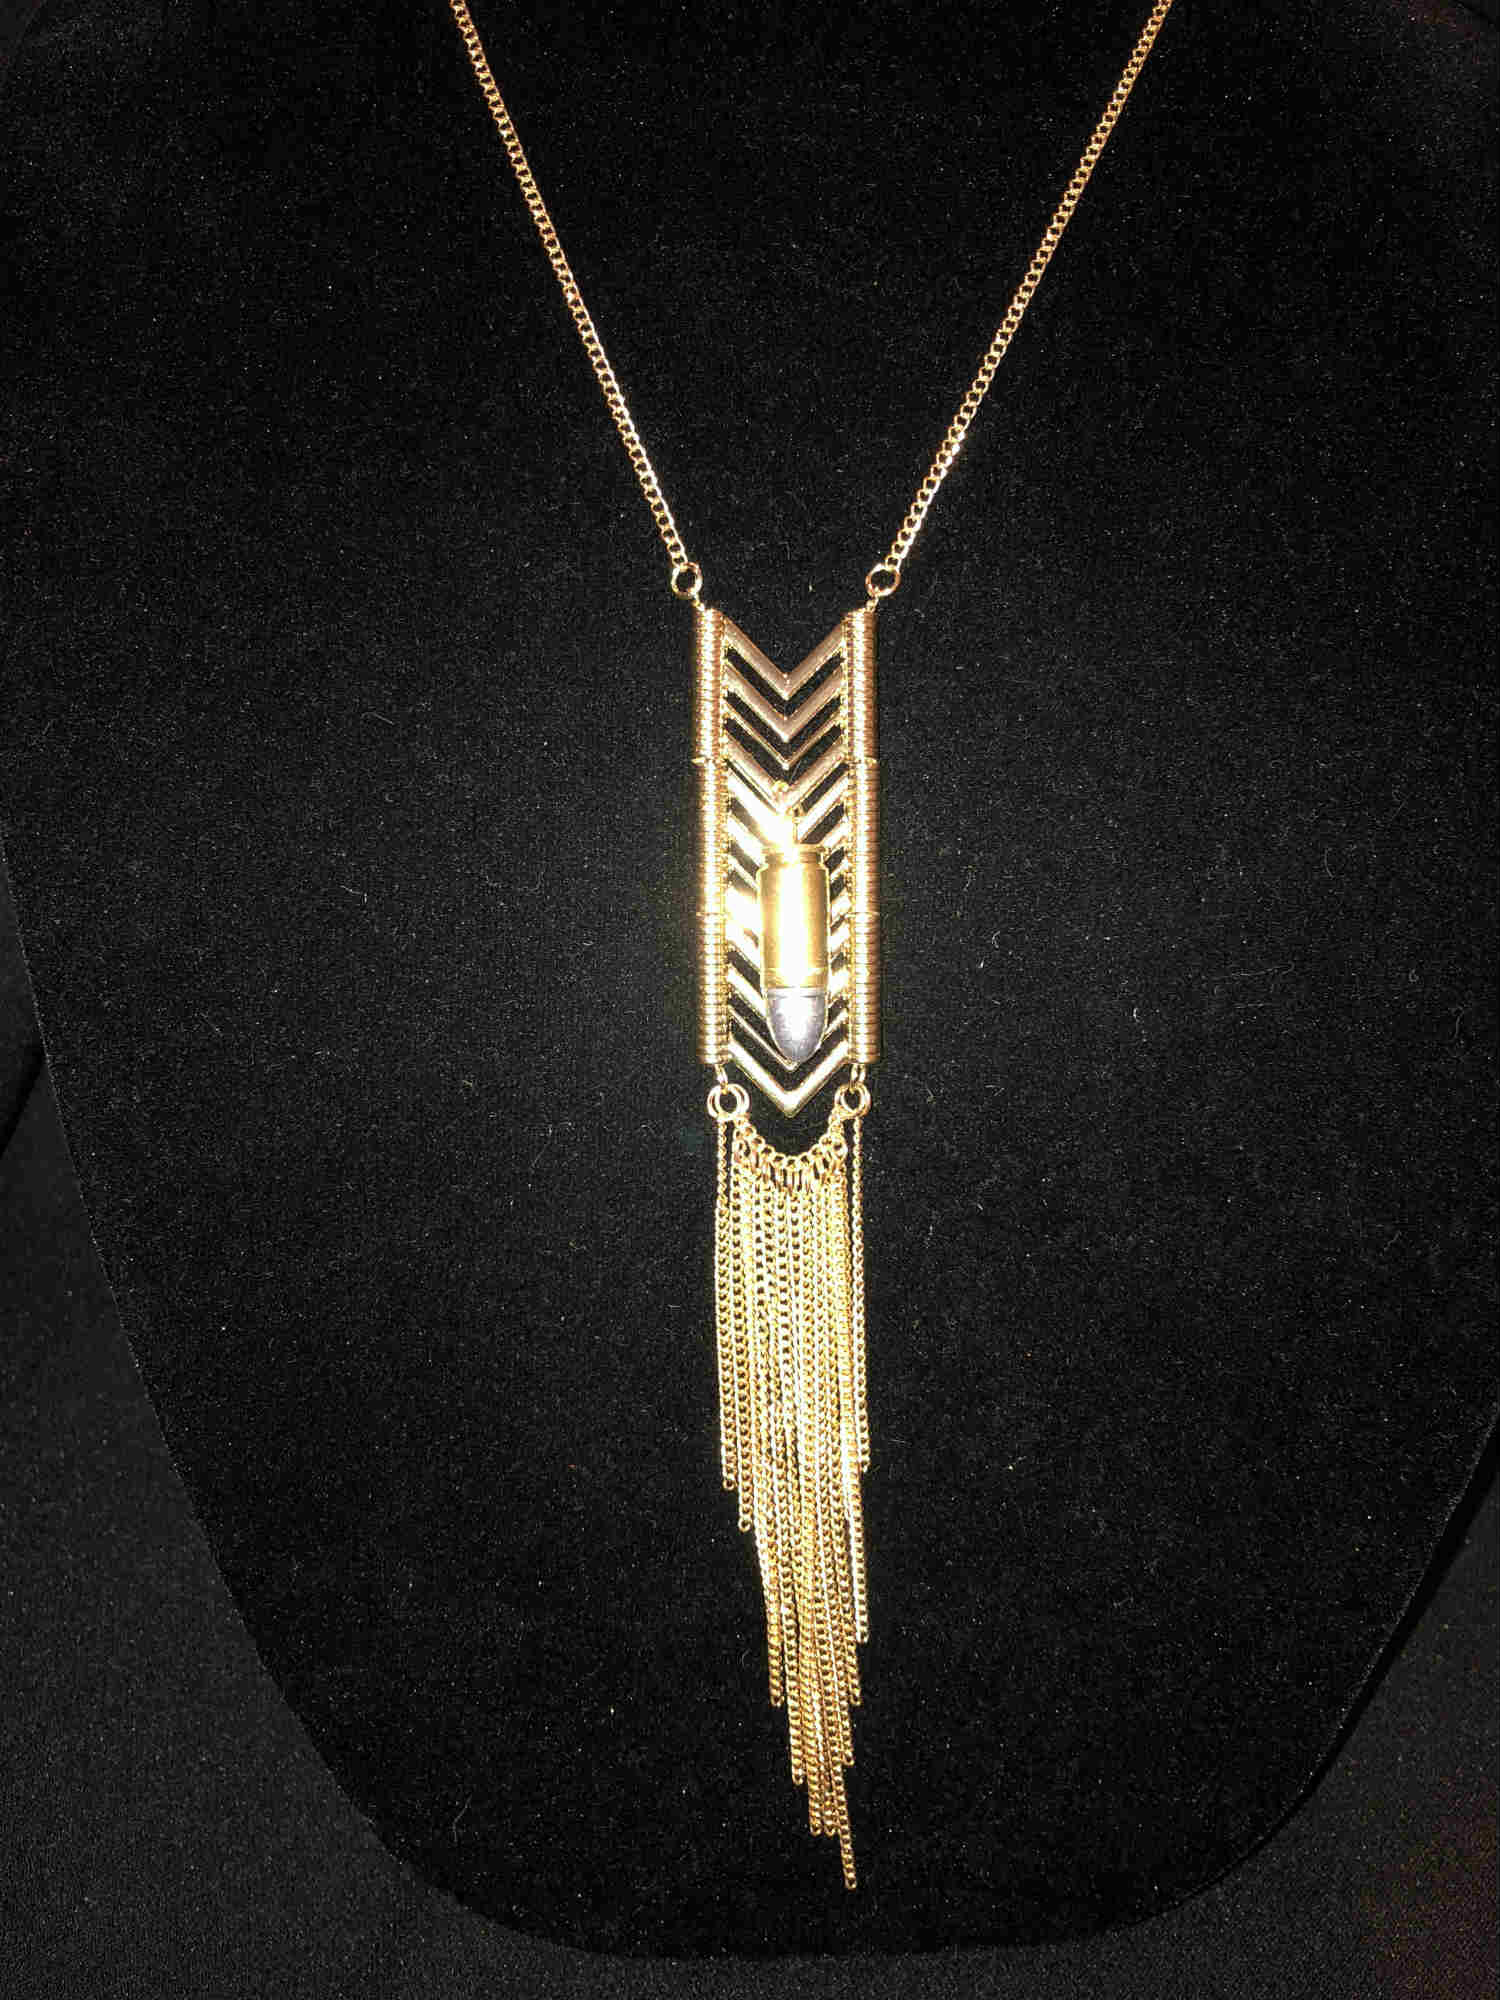 Gold Feather 36 inch adjustable gold tone metalwork with .9mm caliber bullet